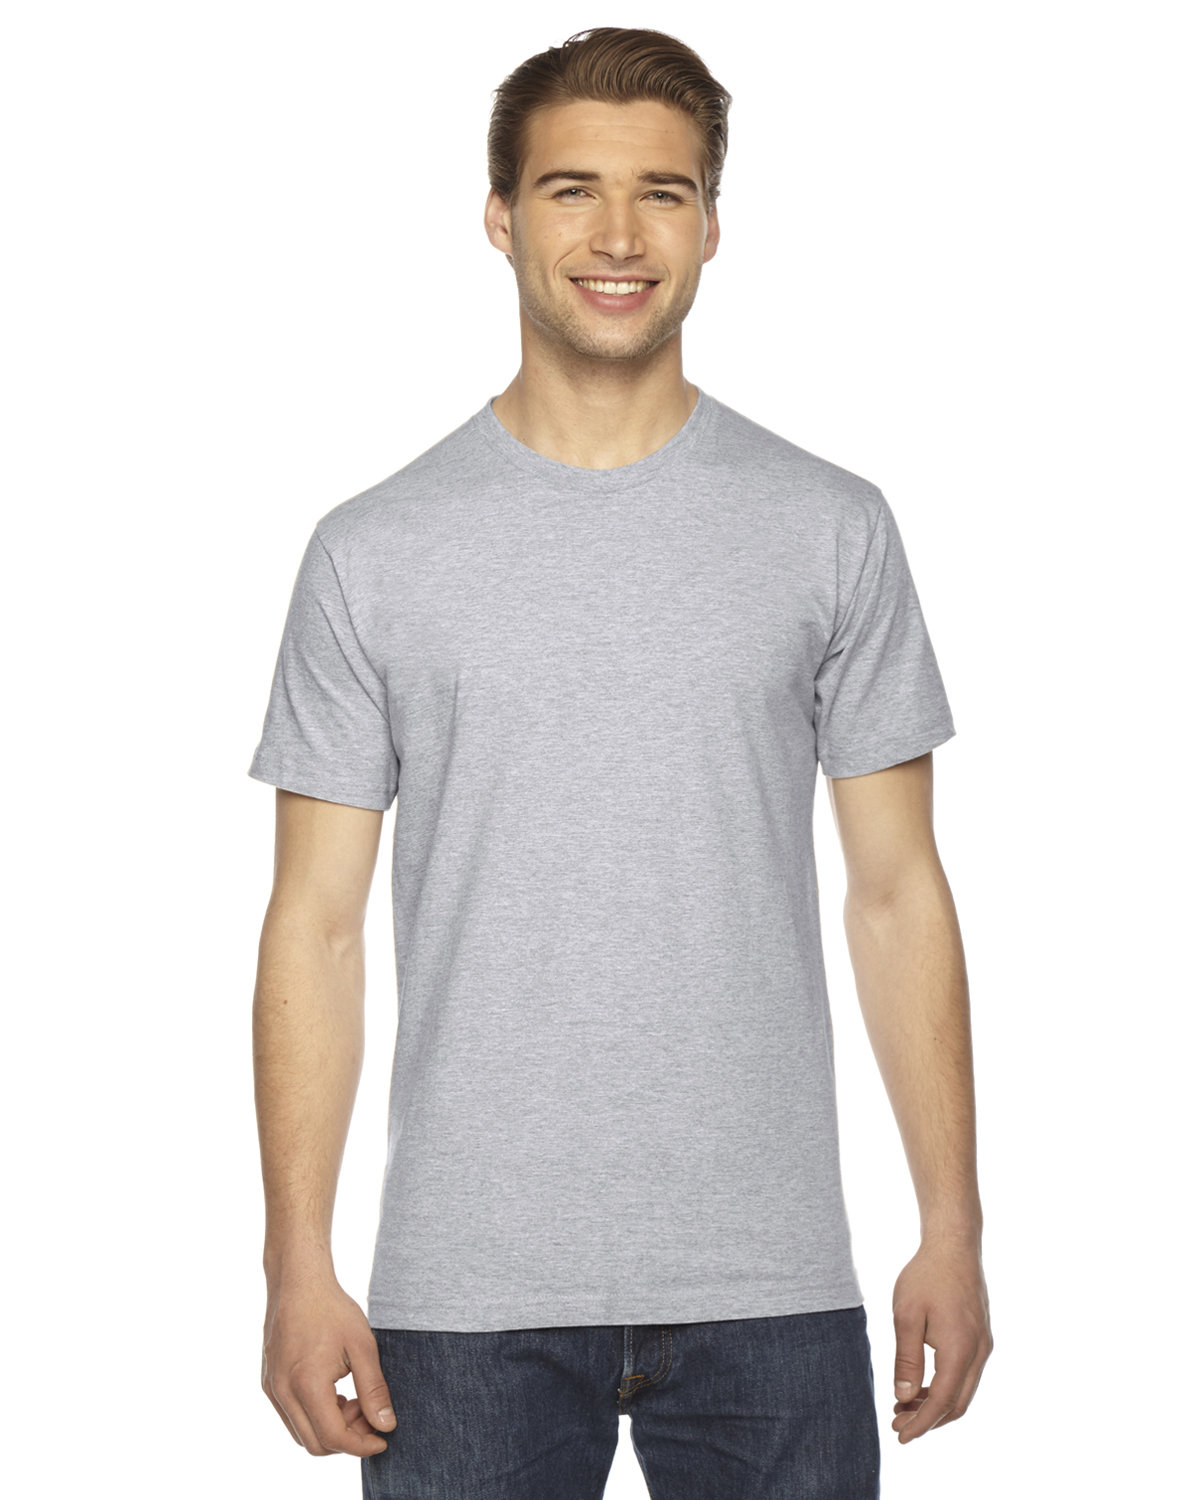 American Apparel Unisex Fine Jersey USA Made T-Shirt HEATHER GREY